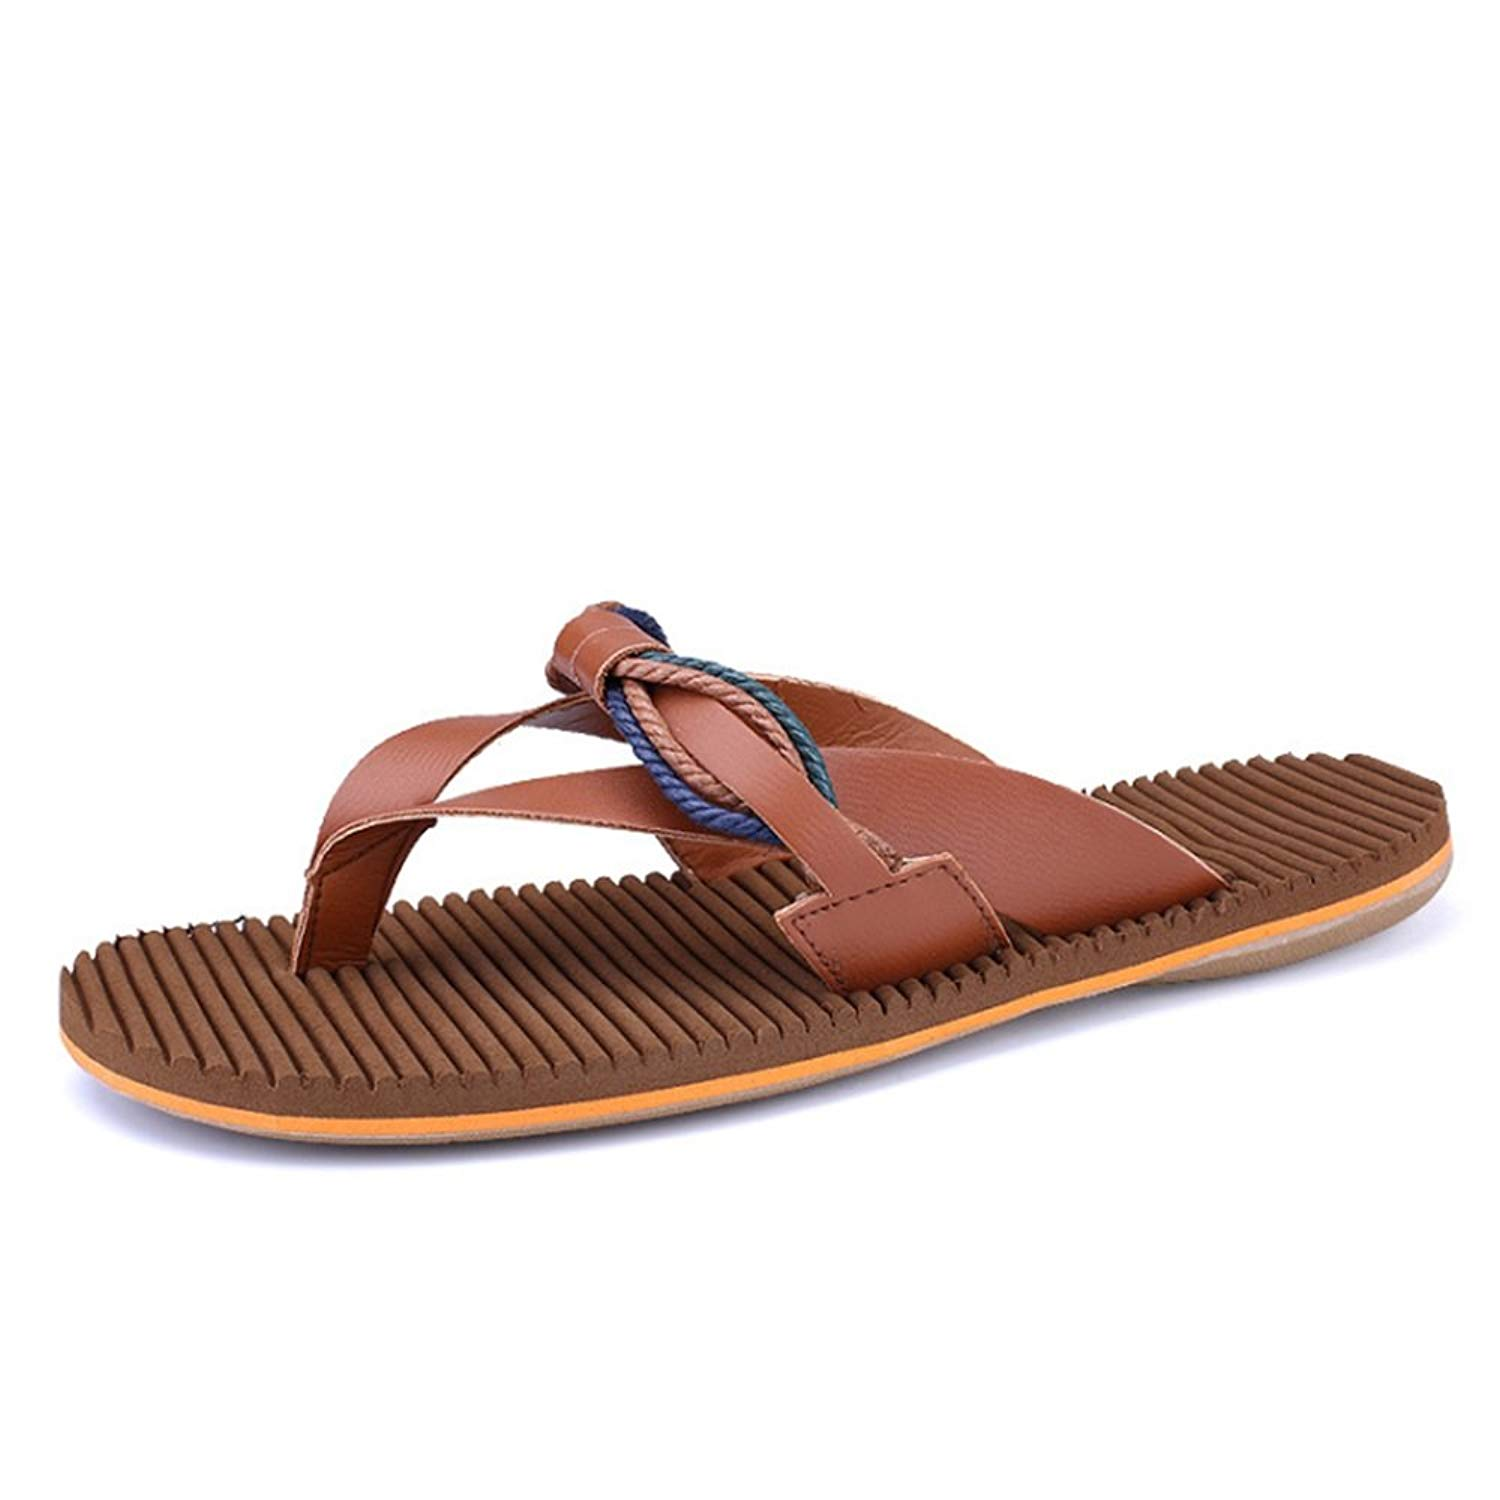 Wagsuyun Summer Slippers Men's Outdoor Sports Quick-Drying Slippers Beach Casual Non-Slip Sandals